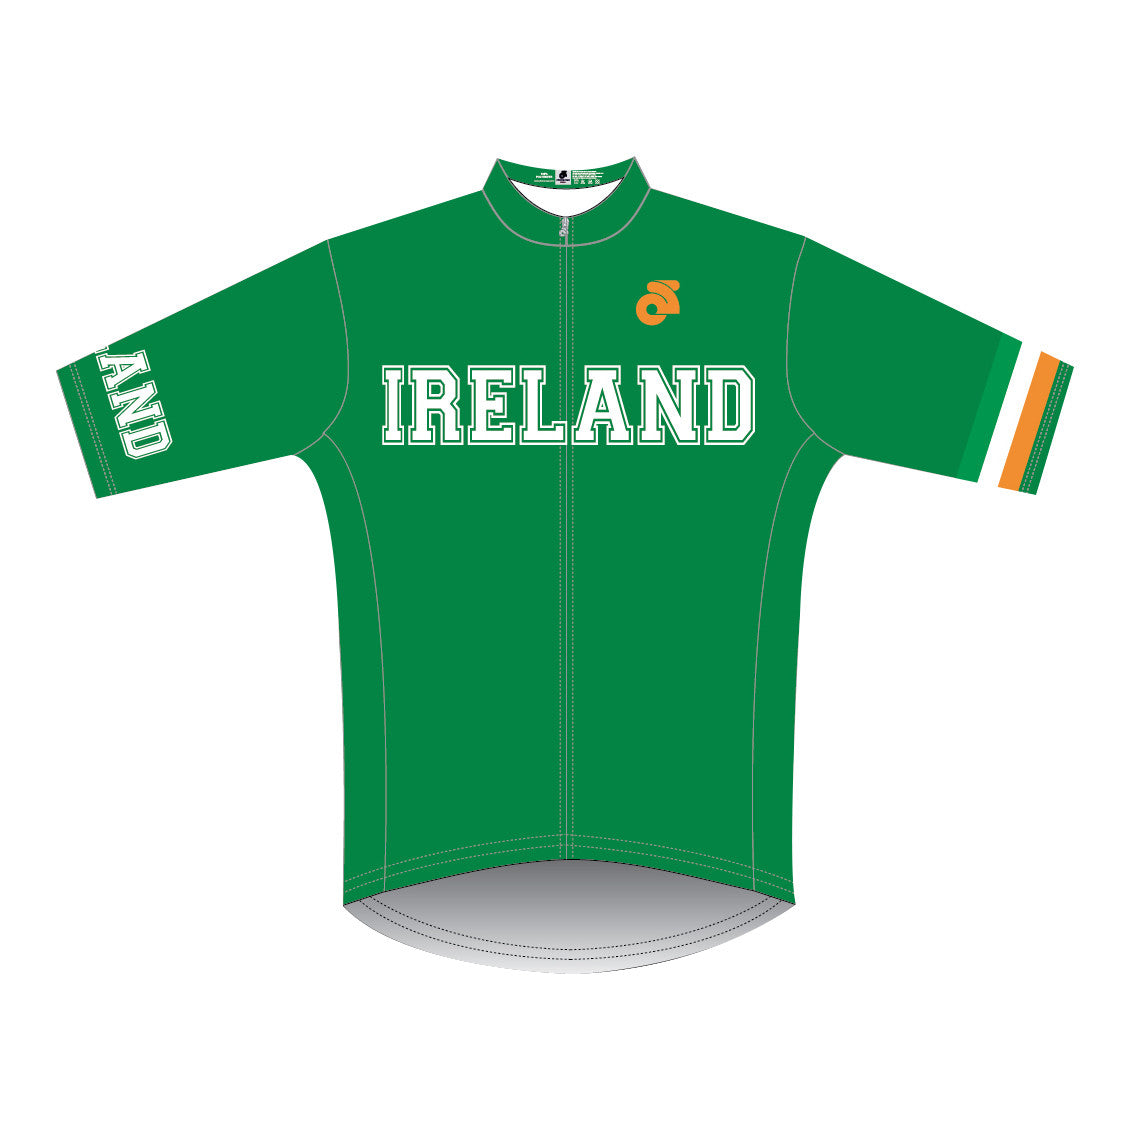 VeloChampion Short Sleeve Ireland Club Cut Jersey - Velochampion